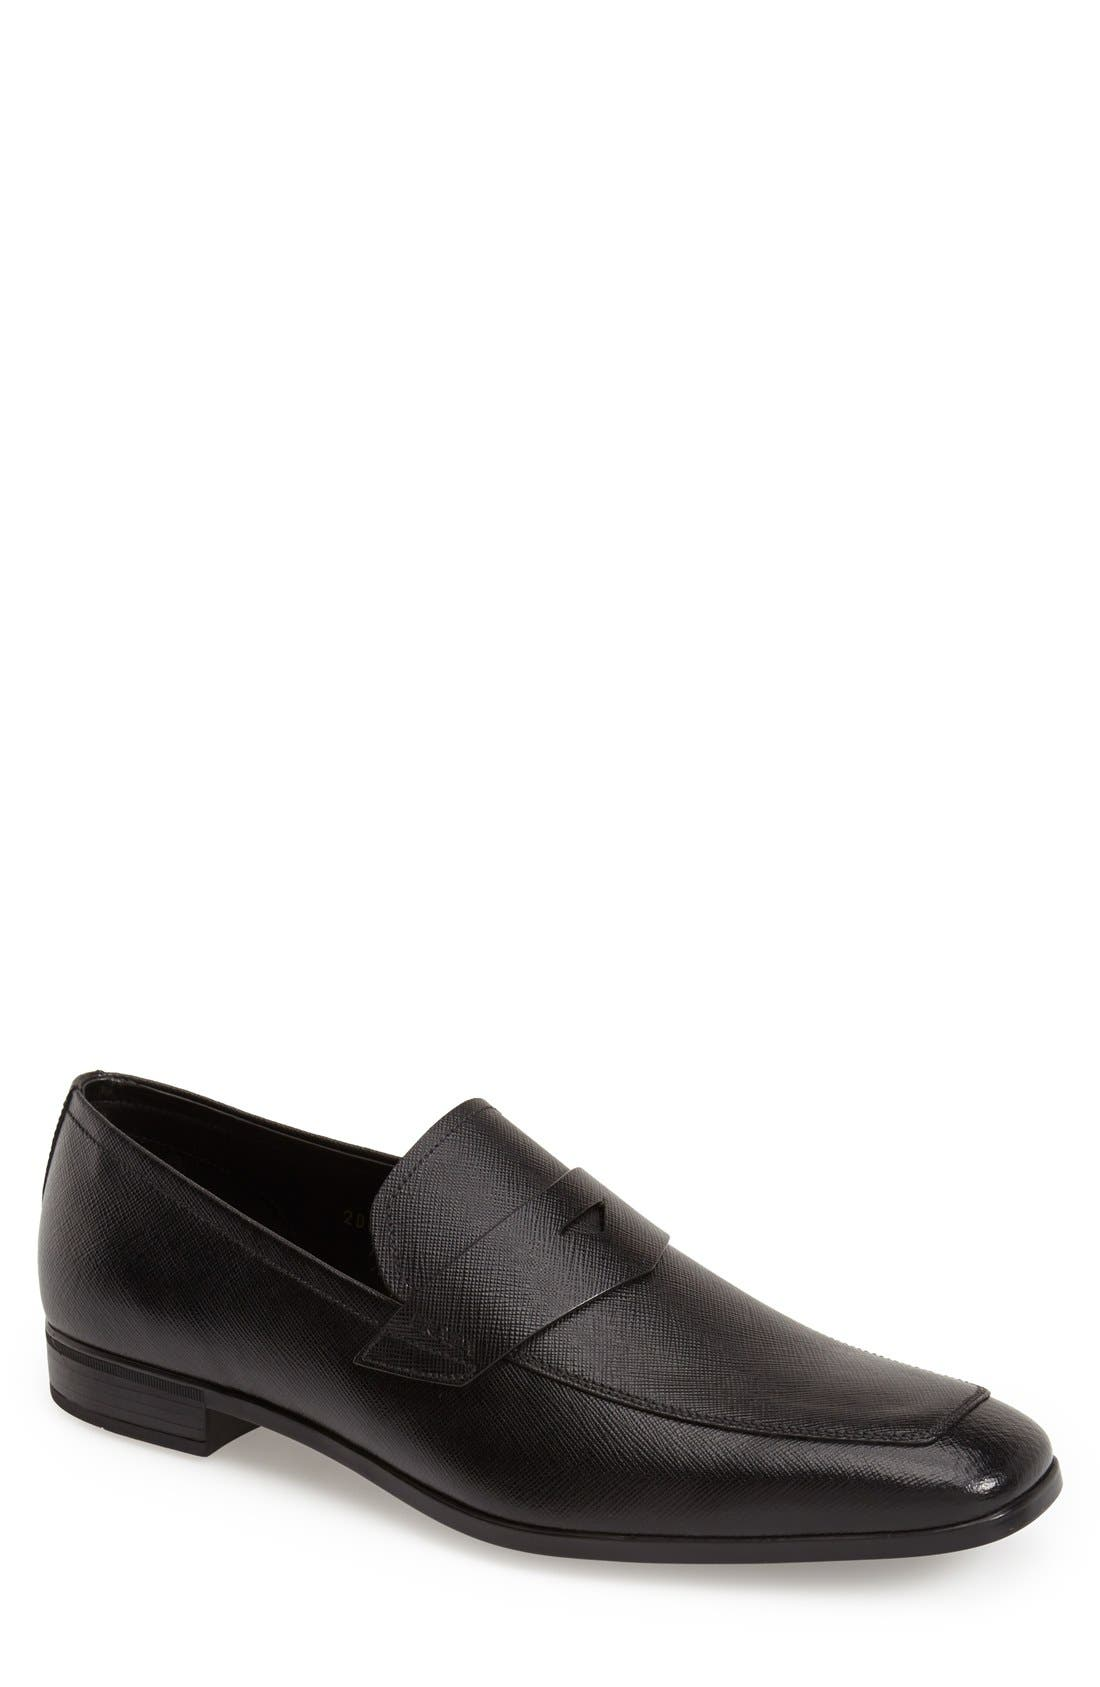 Alternate Image 1 Selected - Prada Saffiano Leather Penny Loafer (Men)